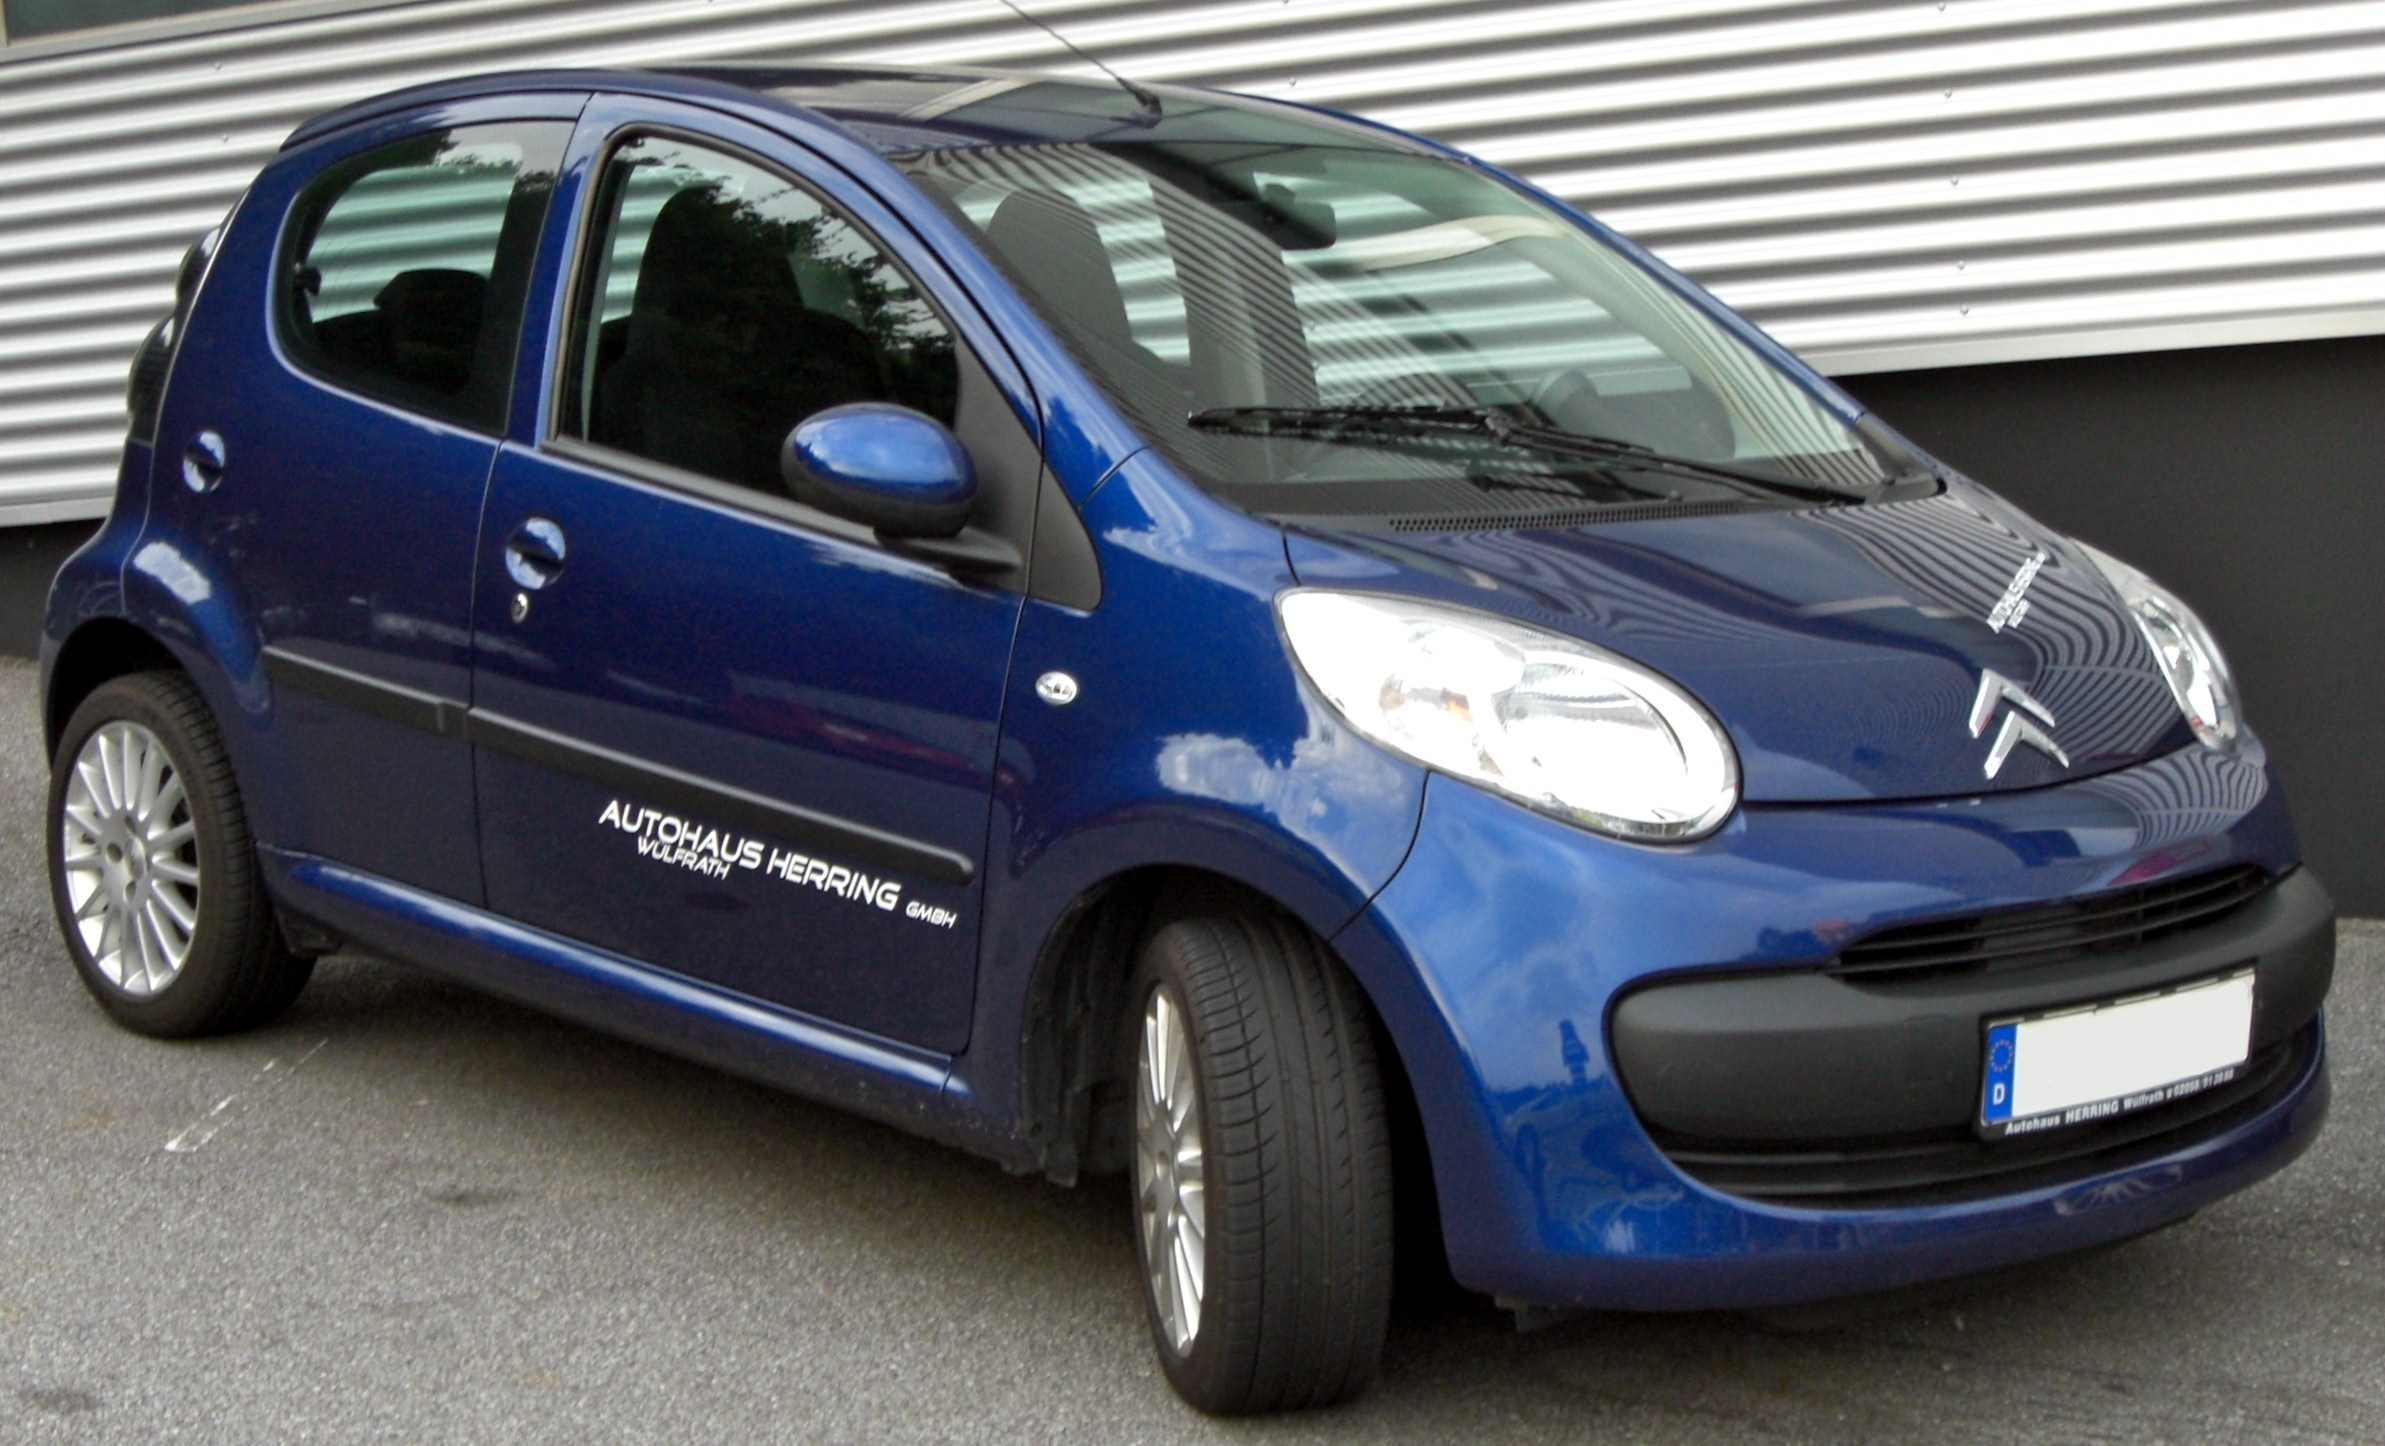 File:Citroën C1 front-2.jpg - Wikimedia Commons